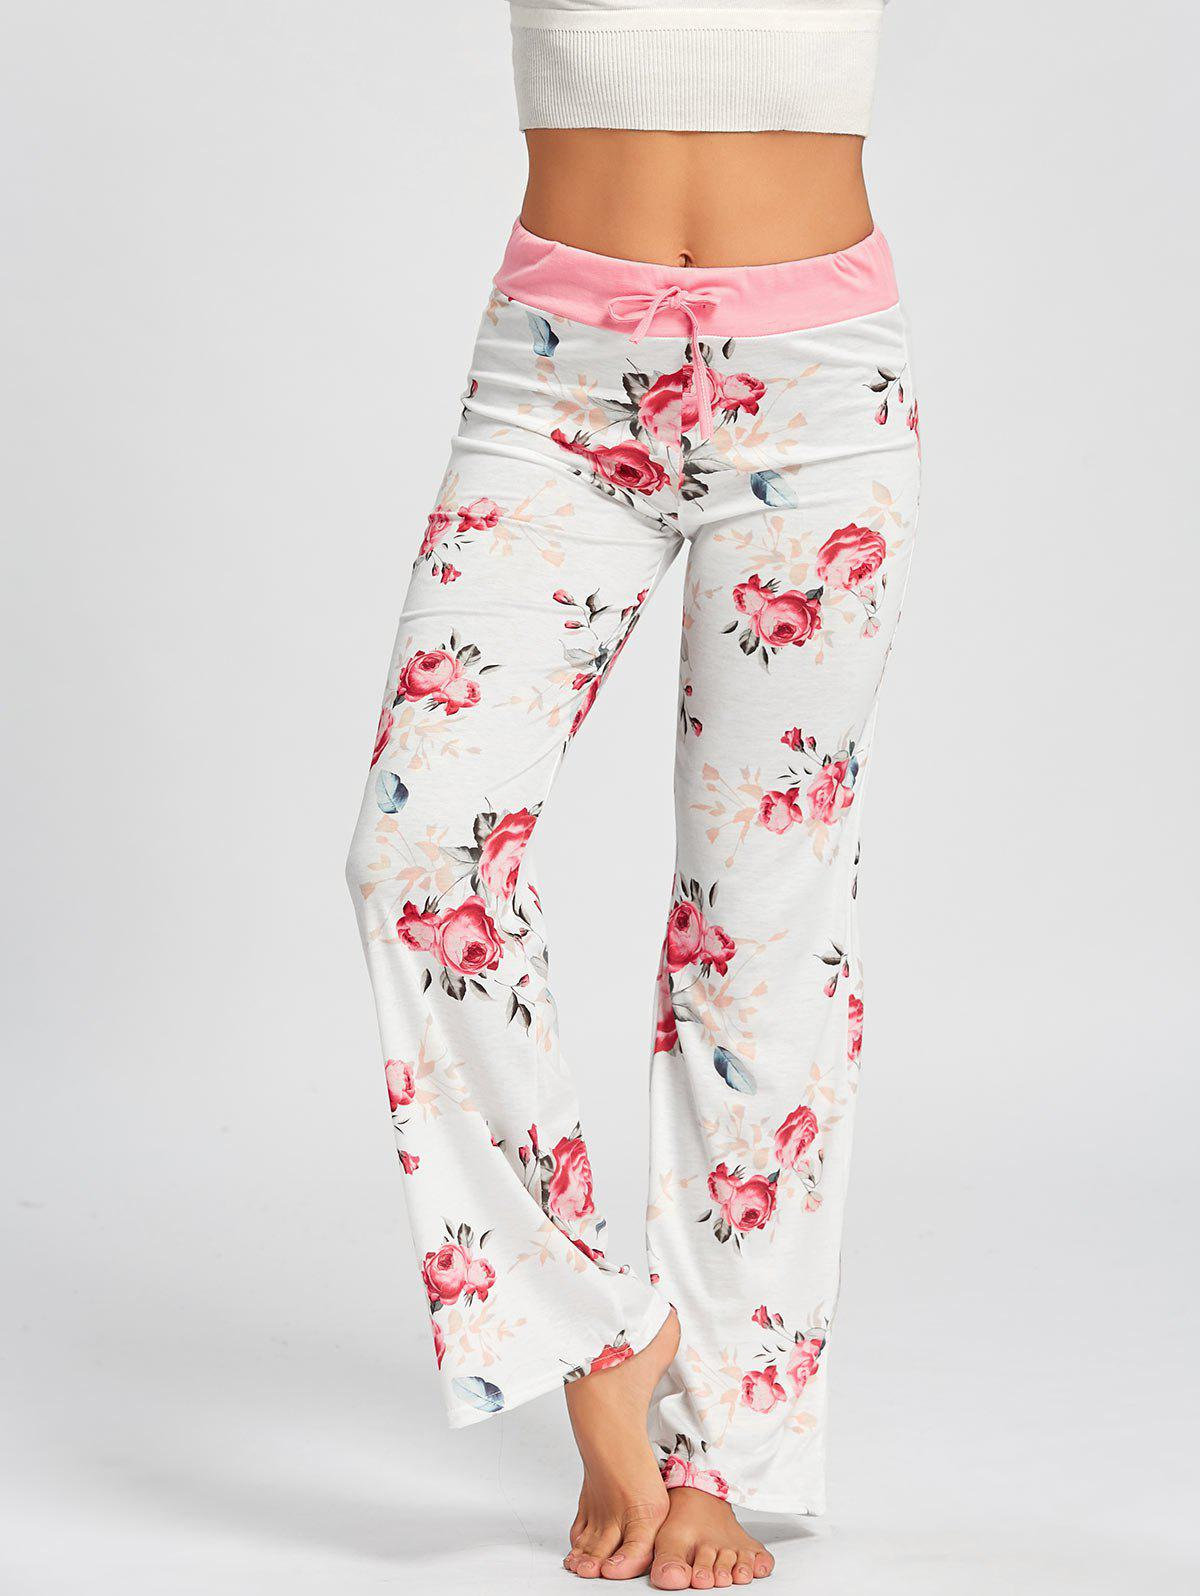 Drawstring Waist Floral PJ Pants - WHITE XL